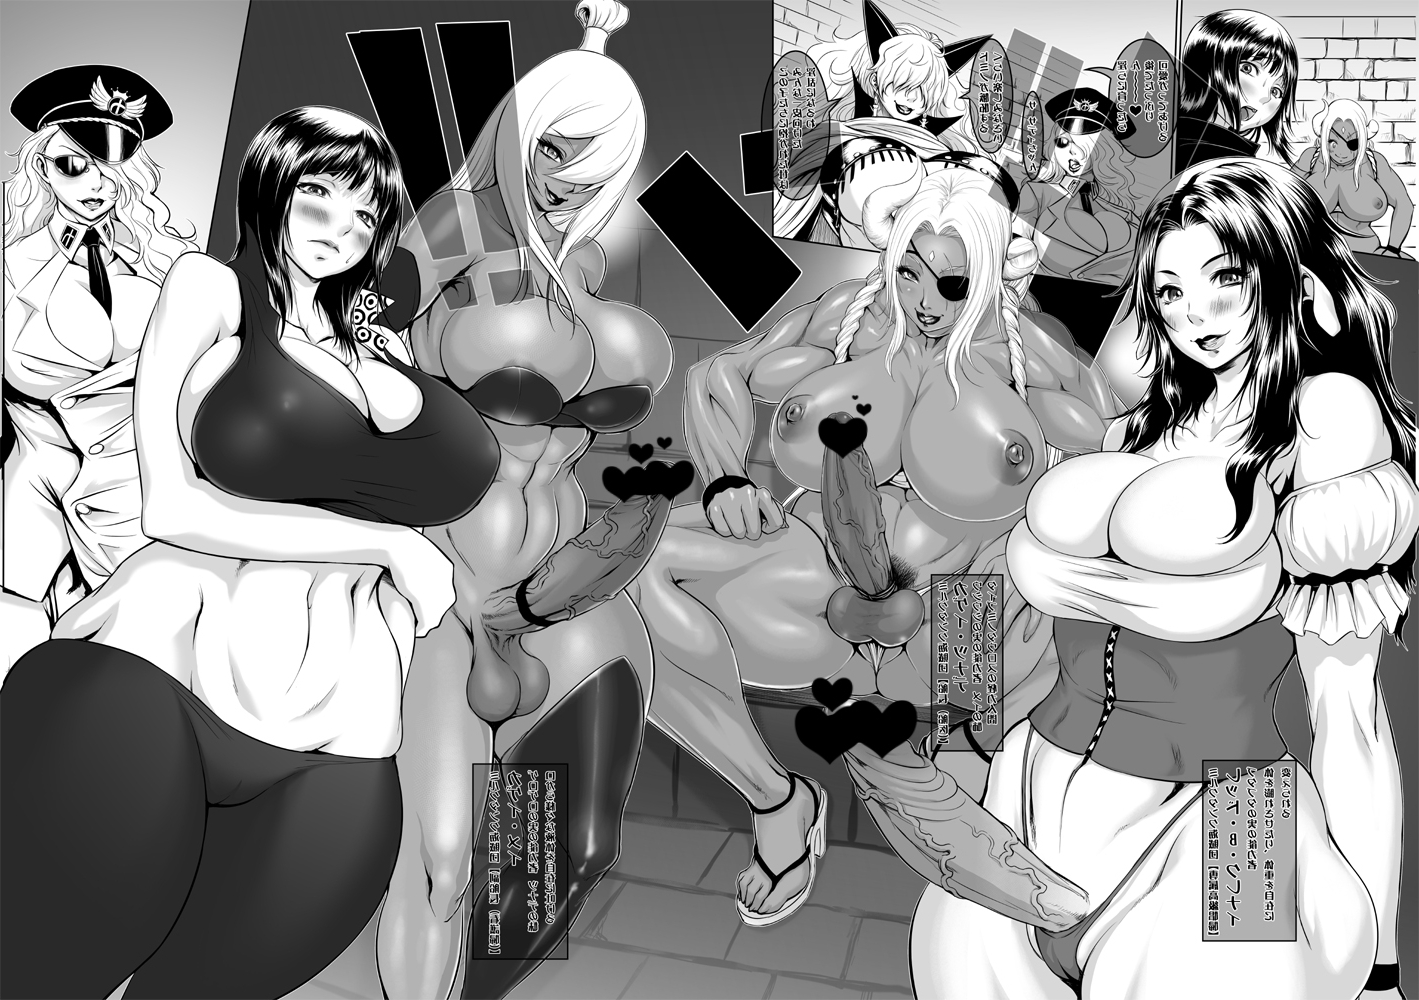 Toon sex pic ##0001308788 abs bikini black hair breasts censored character request chinbotsu cleavage crossover curvy dark skin domino (one piece) eyepatch feet futanari high heels highres hips huge breasts long hair mei terumi mizukage monochrome muscle naruto nico robin nipples one-eyed one piece panties penis plump pointless censoring sadi-chan sandals scar shemale shoes short hair solo source request swimsuit terumi mei testicles thick thighs thighs thong translation request underwear veins veiny penis wide hips